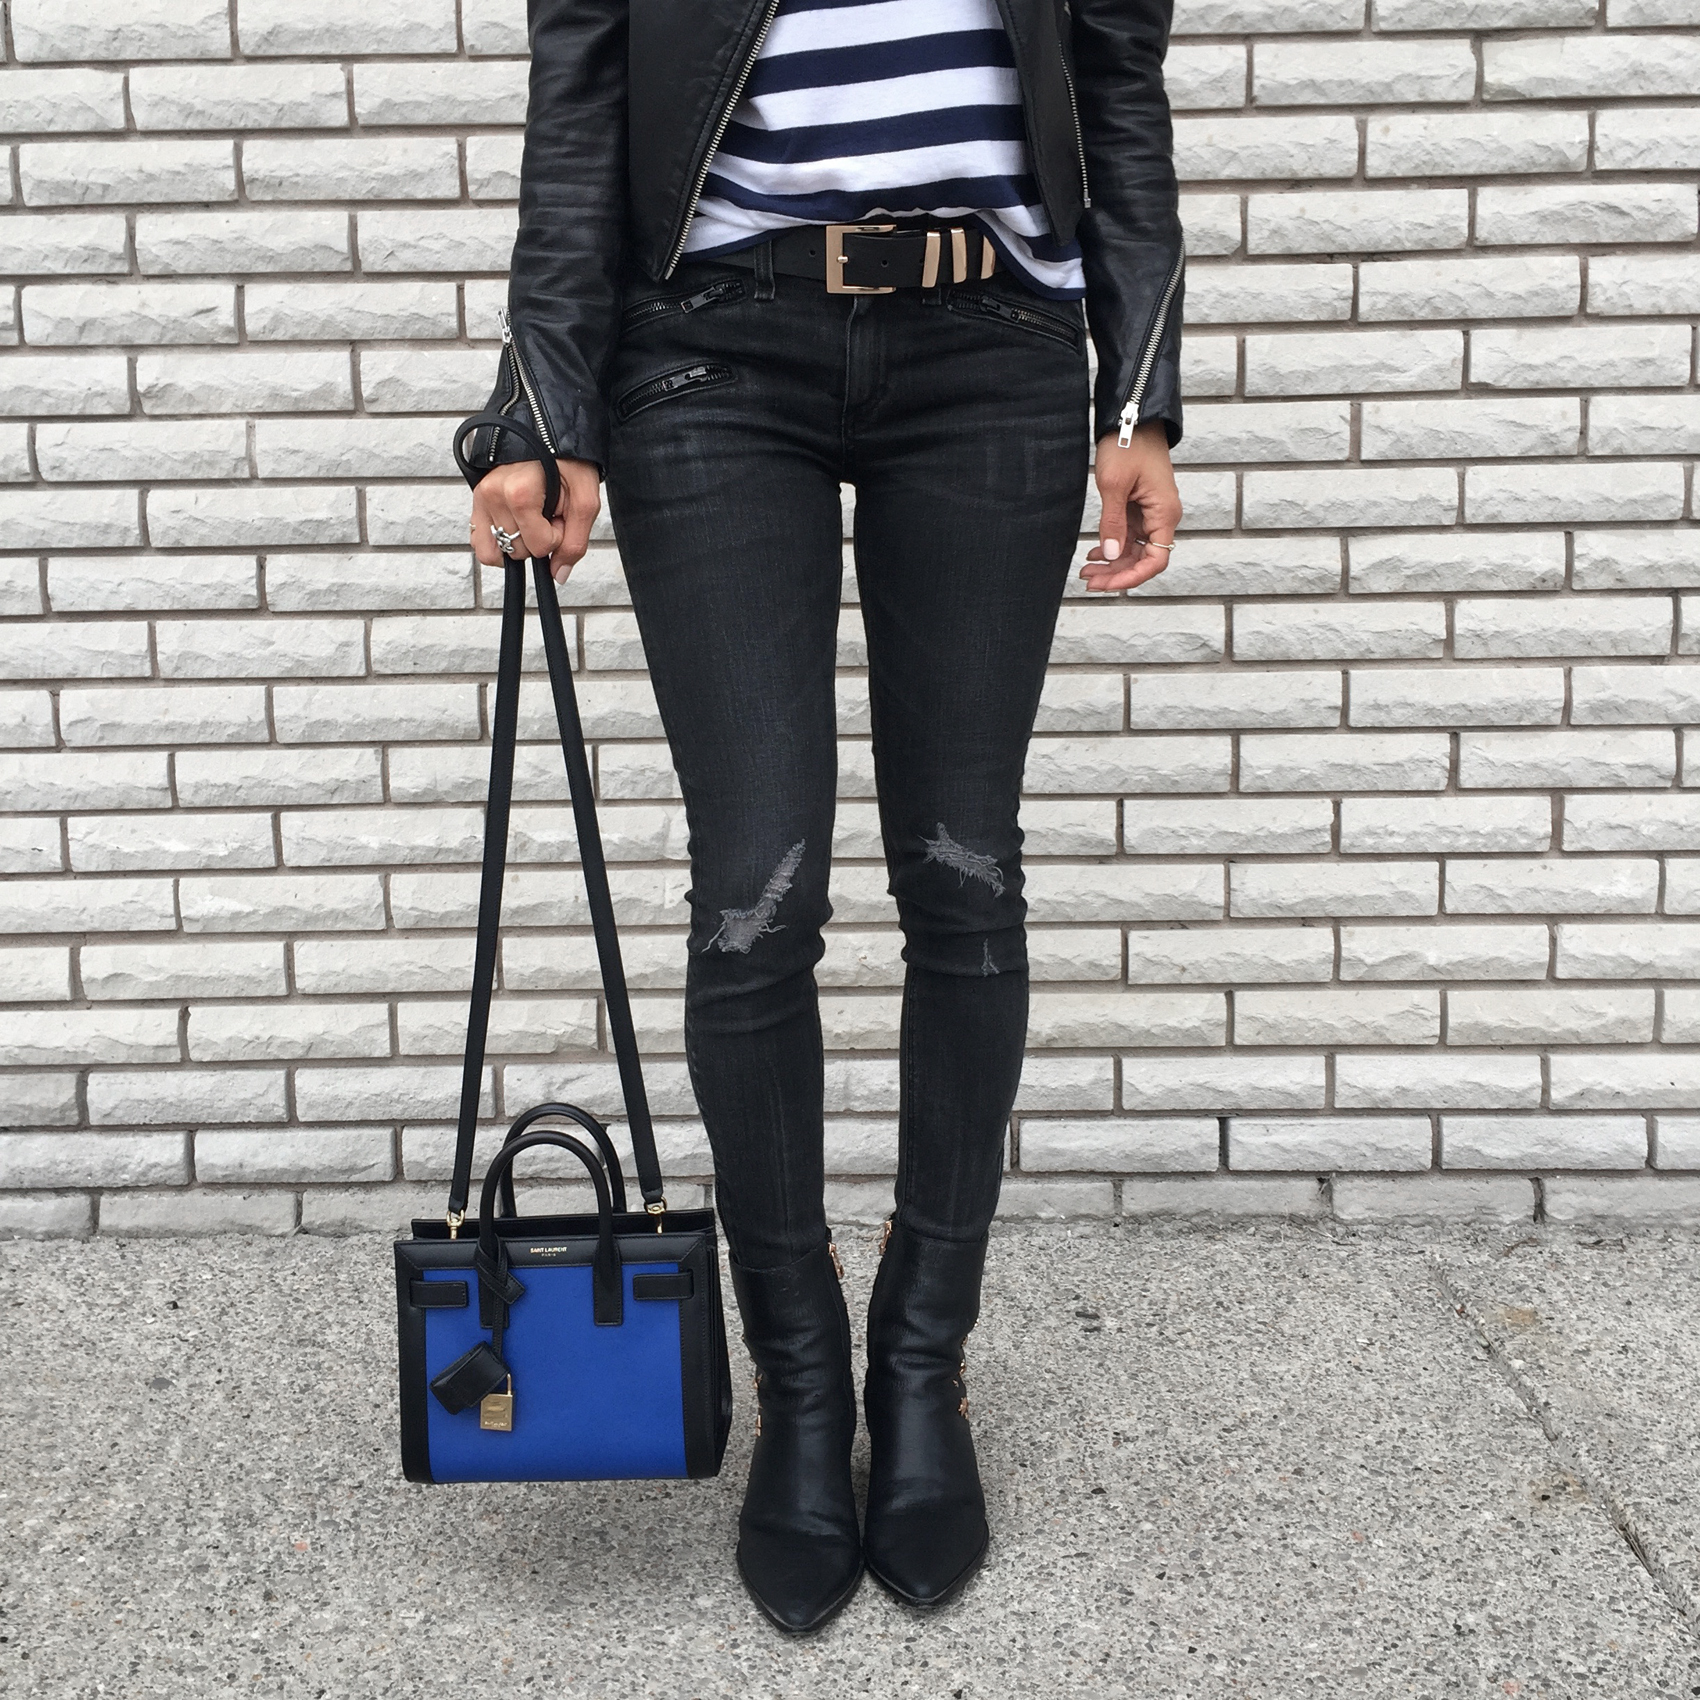 WoahStyle.com_Upper Canada Mall Gorgeous Magazine_Rag and Bone jeans_Mackage leather jacket_Kate Bosworth Matisse Star Boots_YSL Saint Laurent Nano Sac De Jour_Striped Tshirt_OOTD_StreetStyle_Luxe_5175.jpg